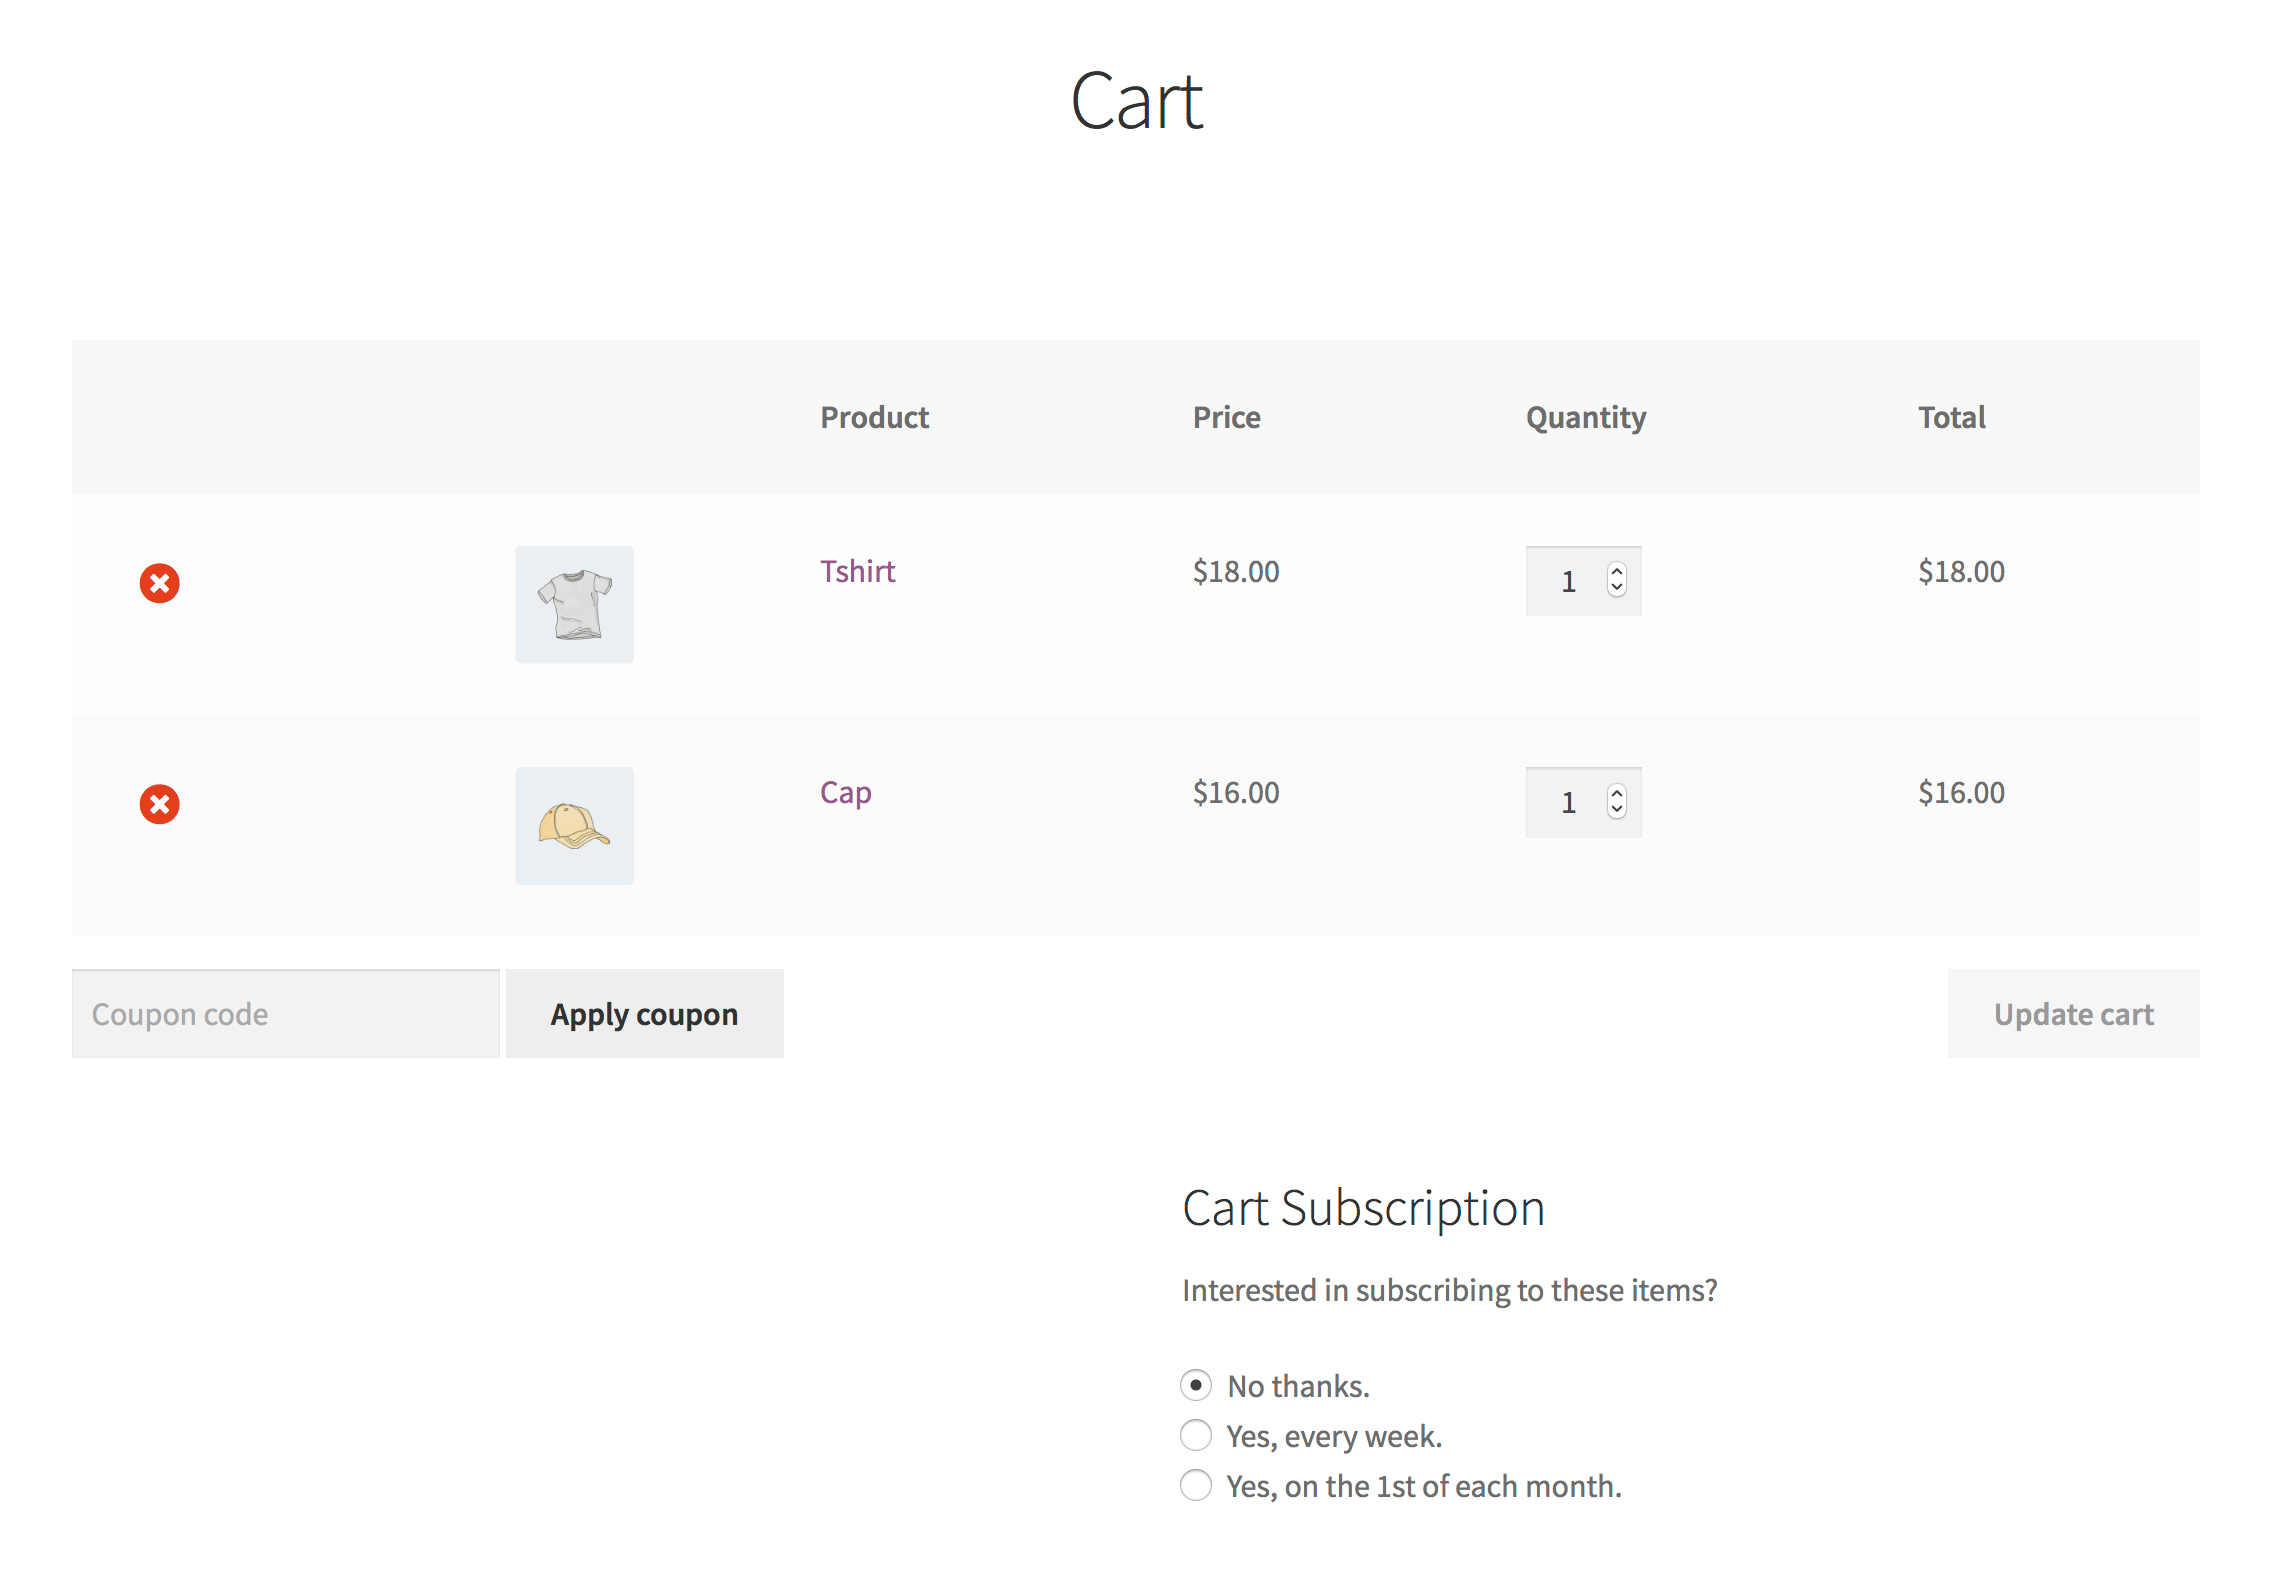 Subscription Options Offered in the Cart